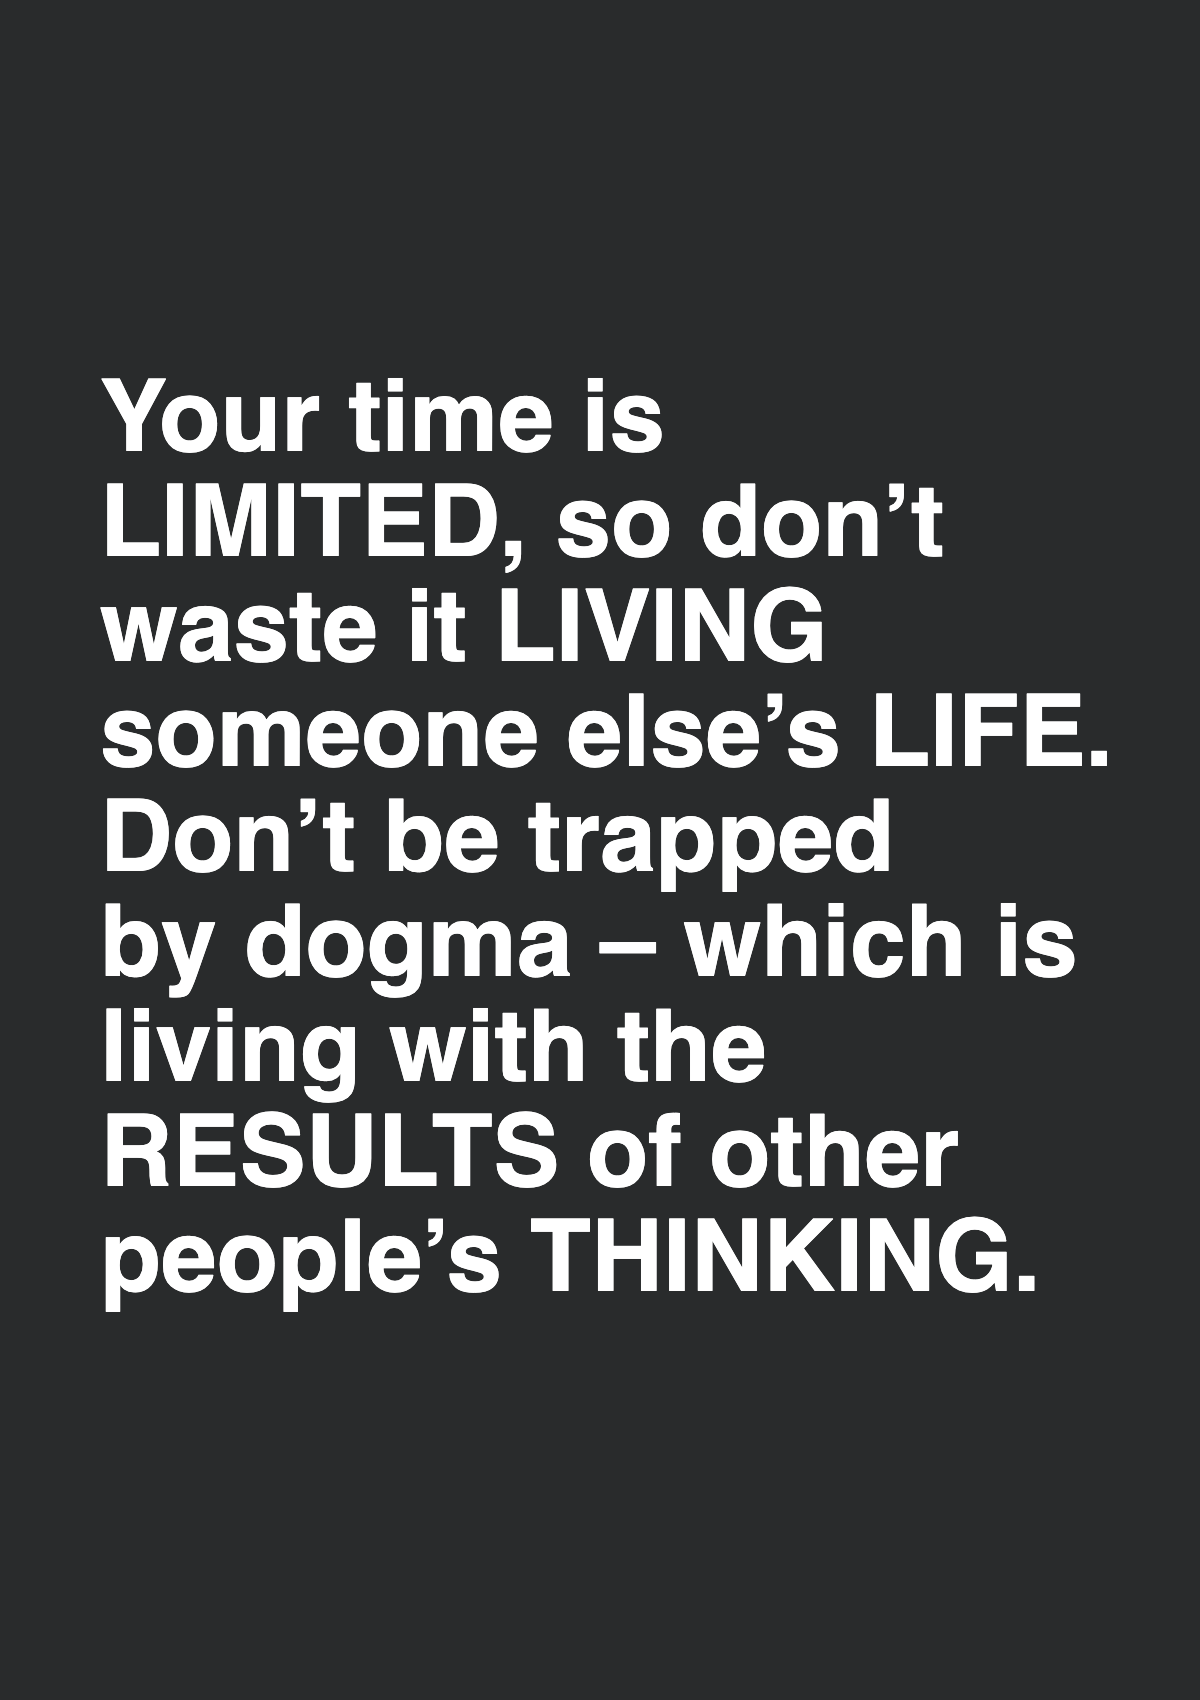 Your time is limited, so don't waste it living someone else's life. Don't be trapped by dogma – which is living with the results of other people's thinking.